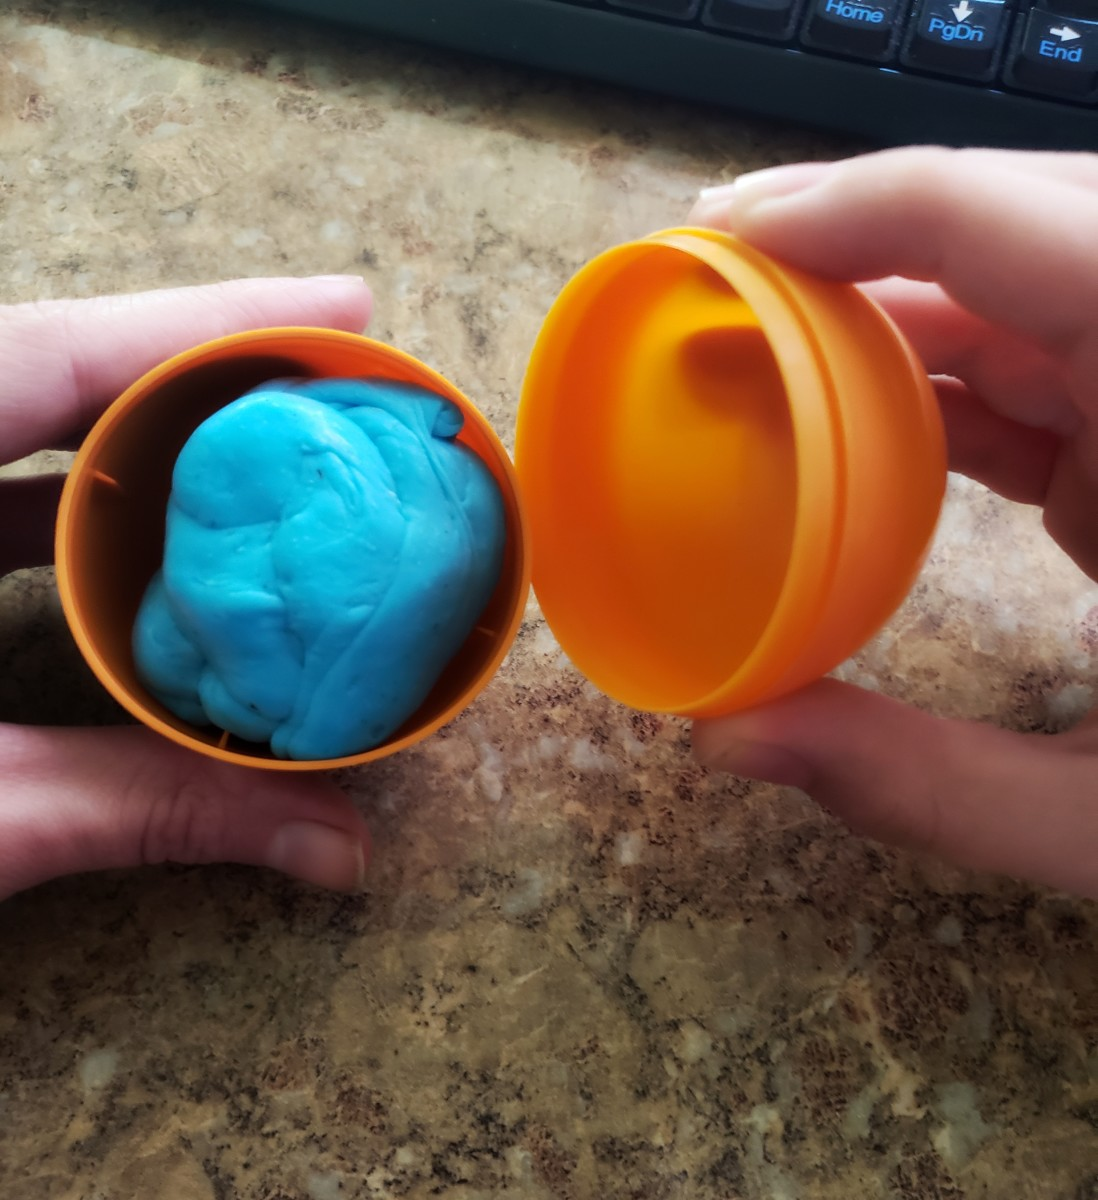 Keep your silly putty slime in a large Easter egg.